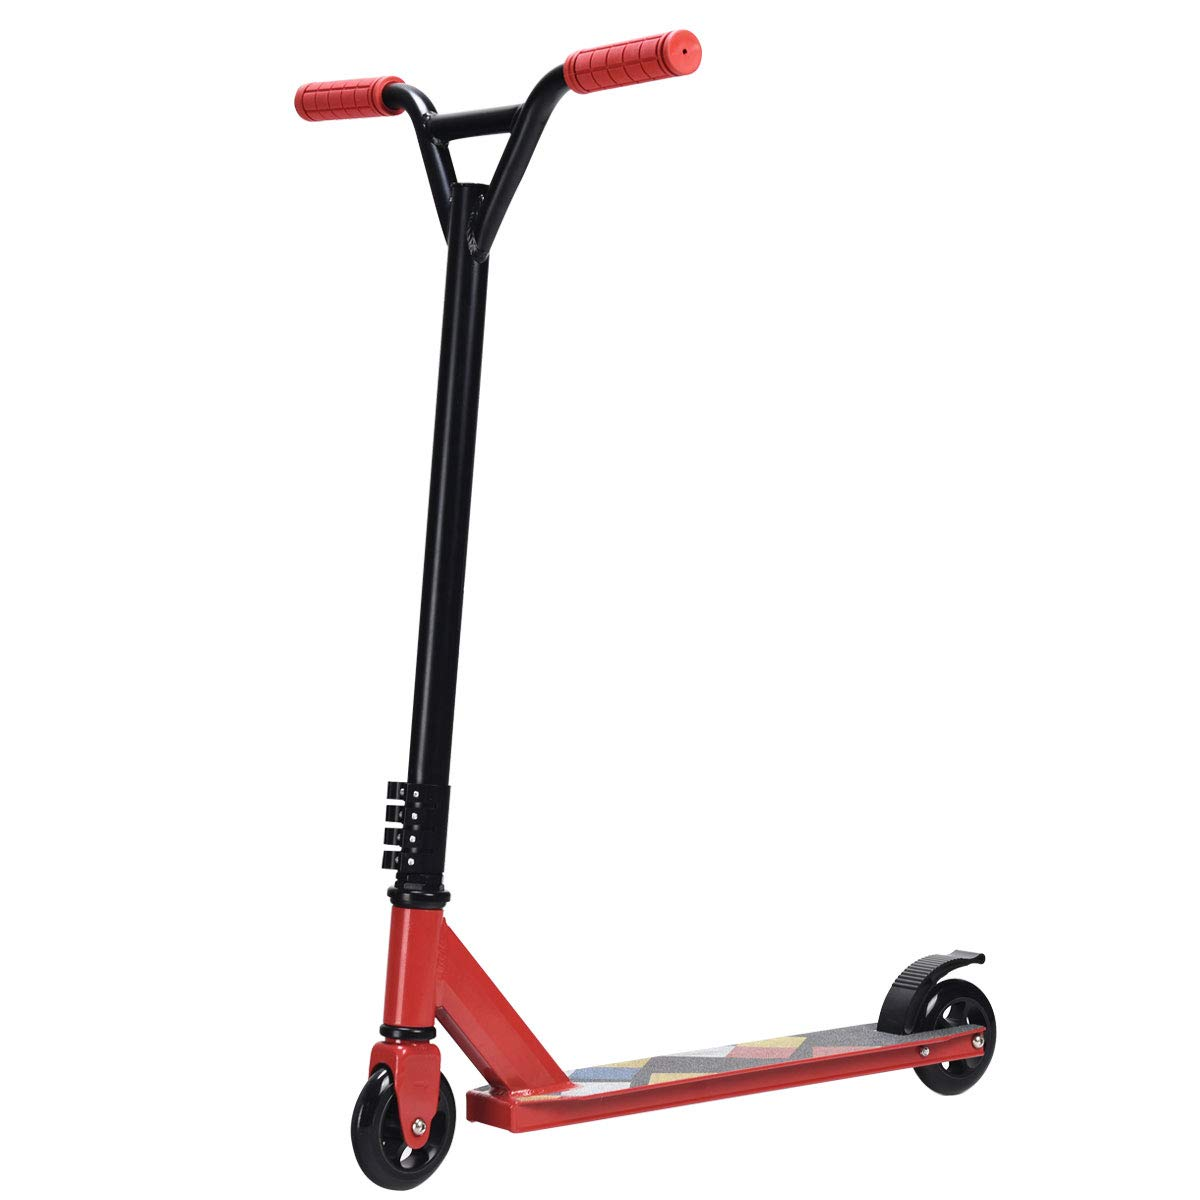 S AFSTAR Safstar Kick Scooter Lightweight Aluminum Freestyle Stunt with 2 Wheels for Kids Teenagers Adults (Red)